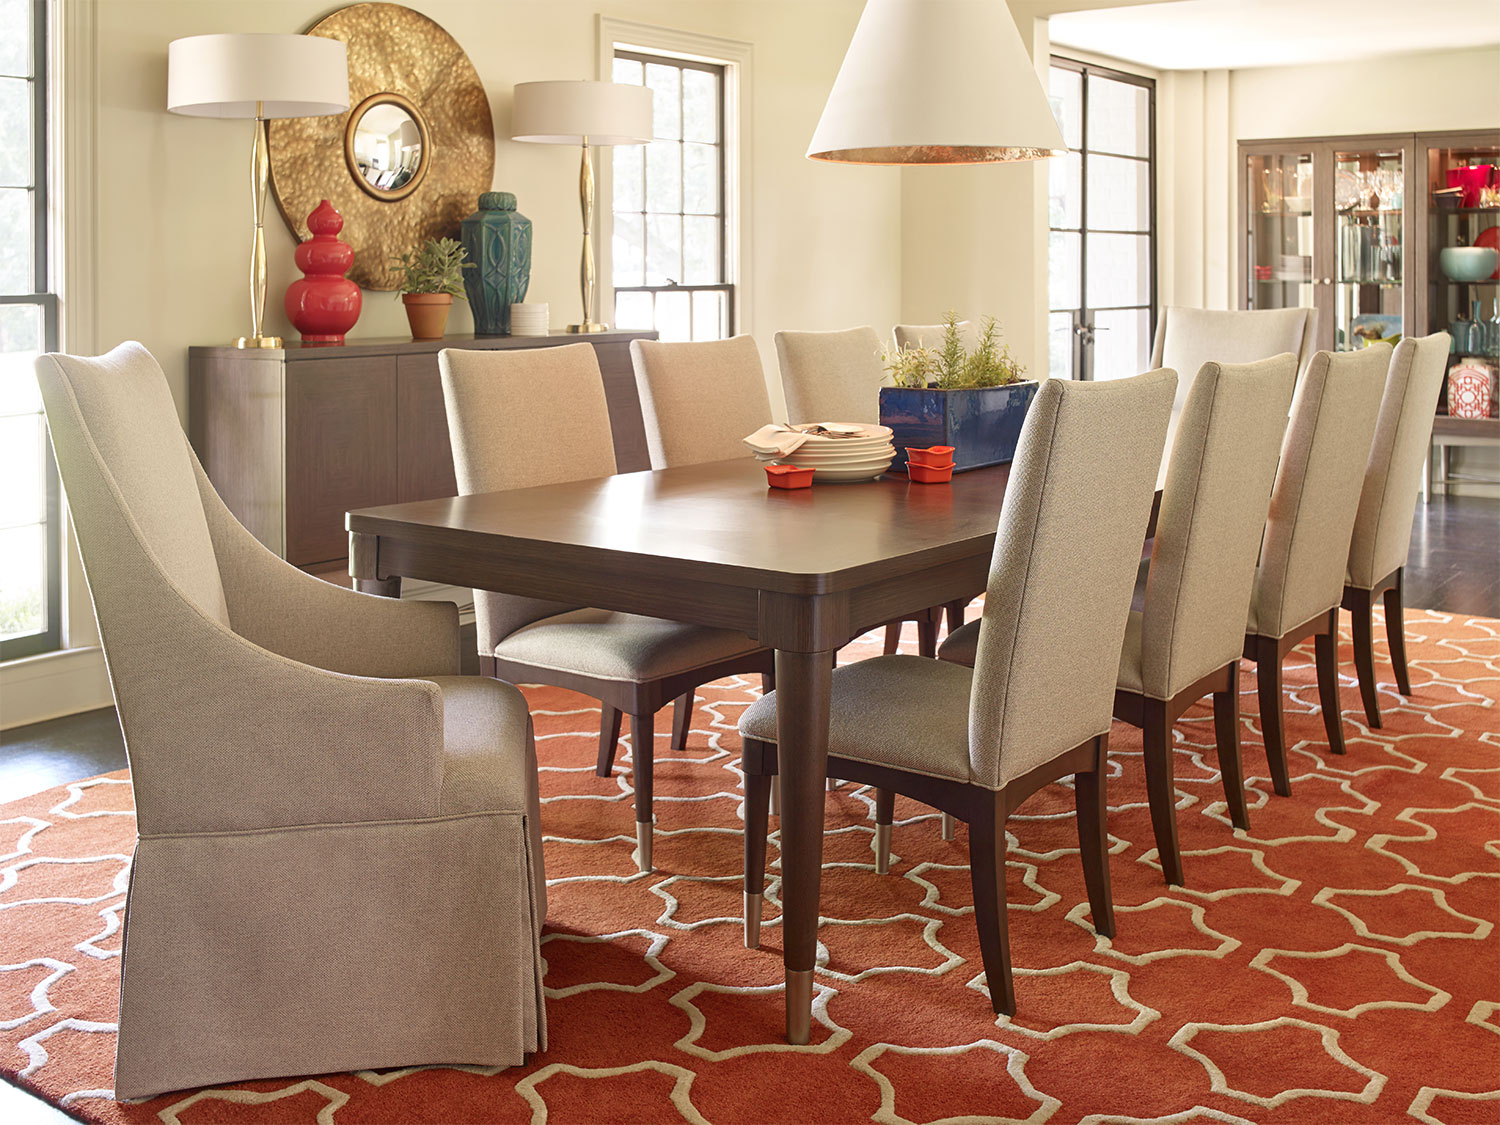 Rachael Ray Soho Dining Table With Three Leaves